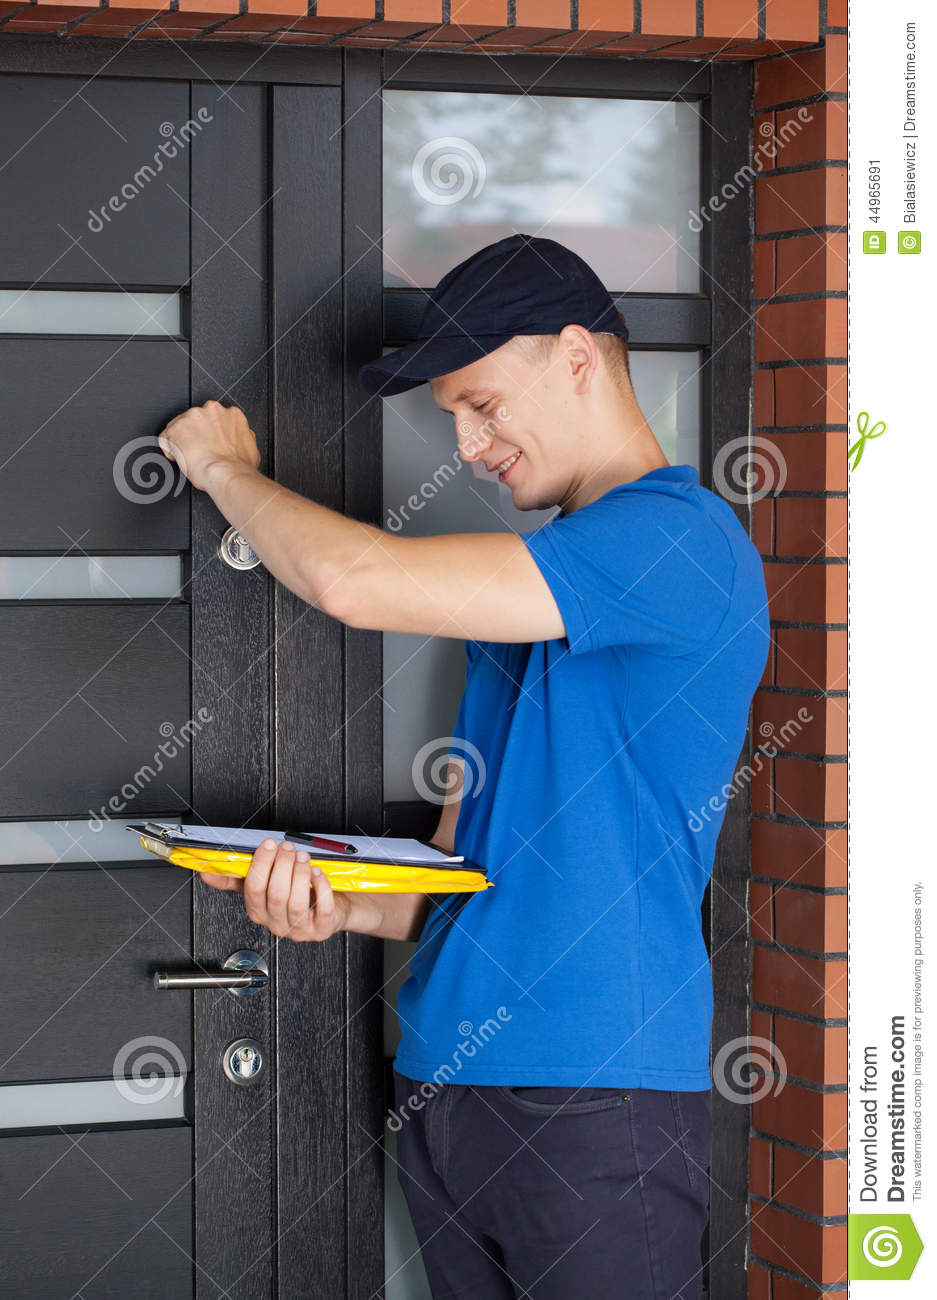 Delivery Guy Knocking On Door Stock Photo 44965691 - Megapixl